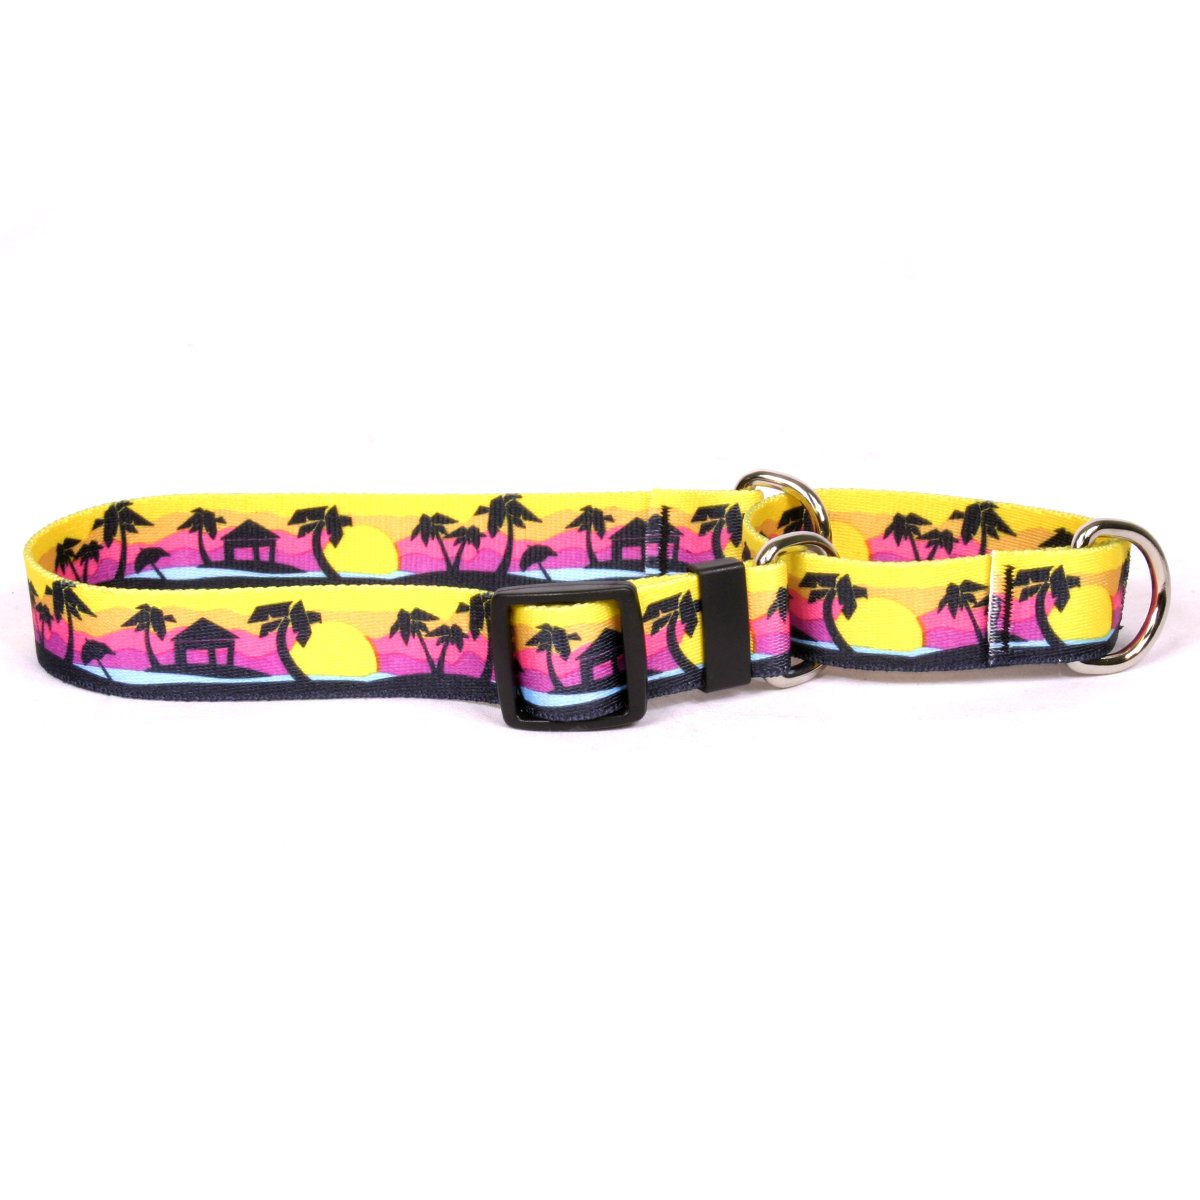 Yellow Dog Design Palm Tree Island Martingale Dog Collar, Small-3/4 Wide and fits Neck Sizes 12 to 16''